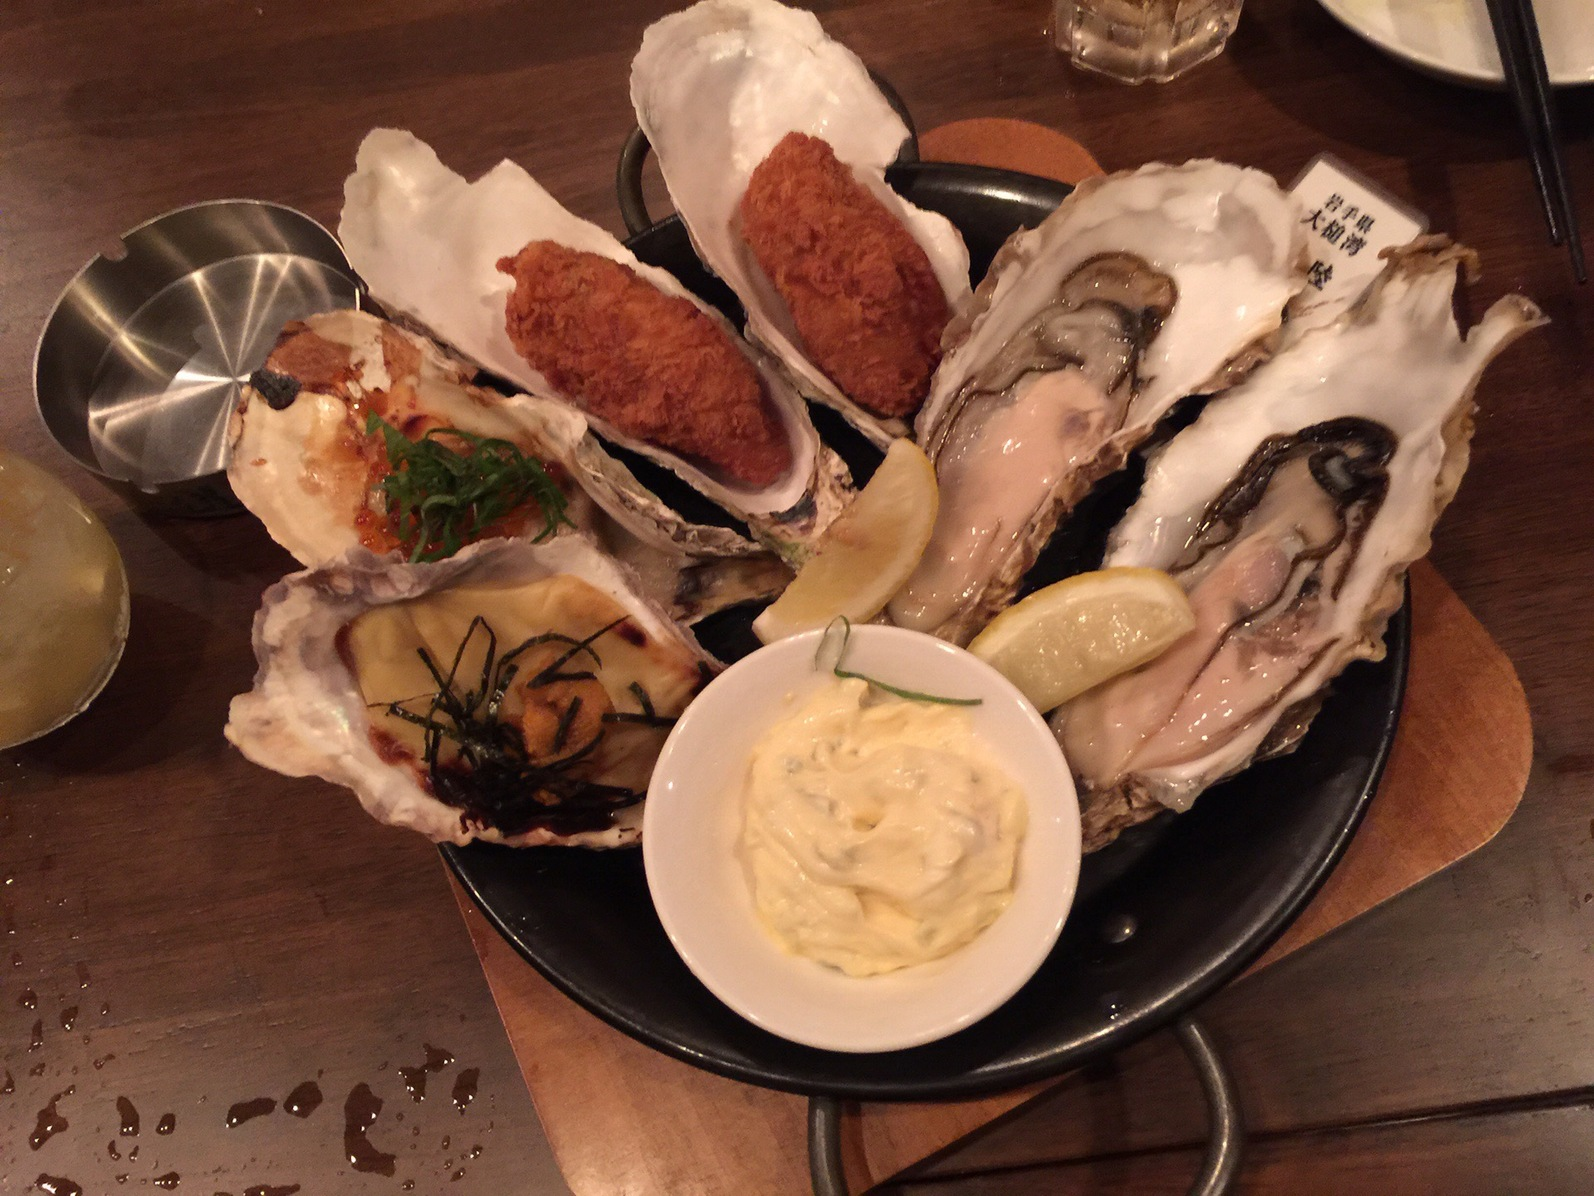 Tapas table 310 by Tokyo Oyster Bar